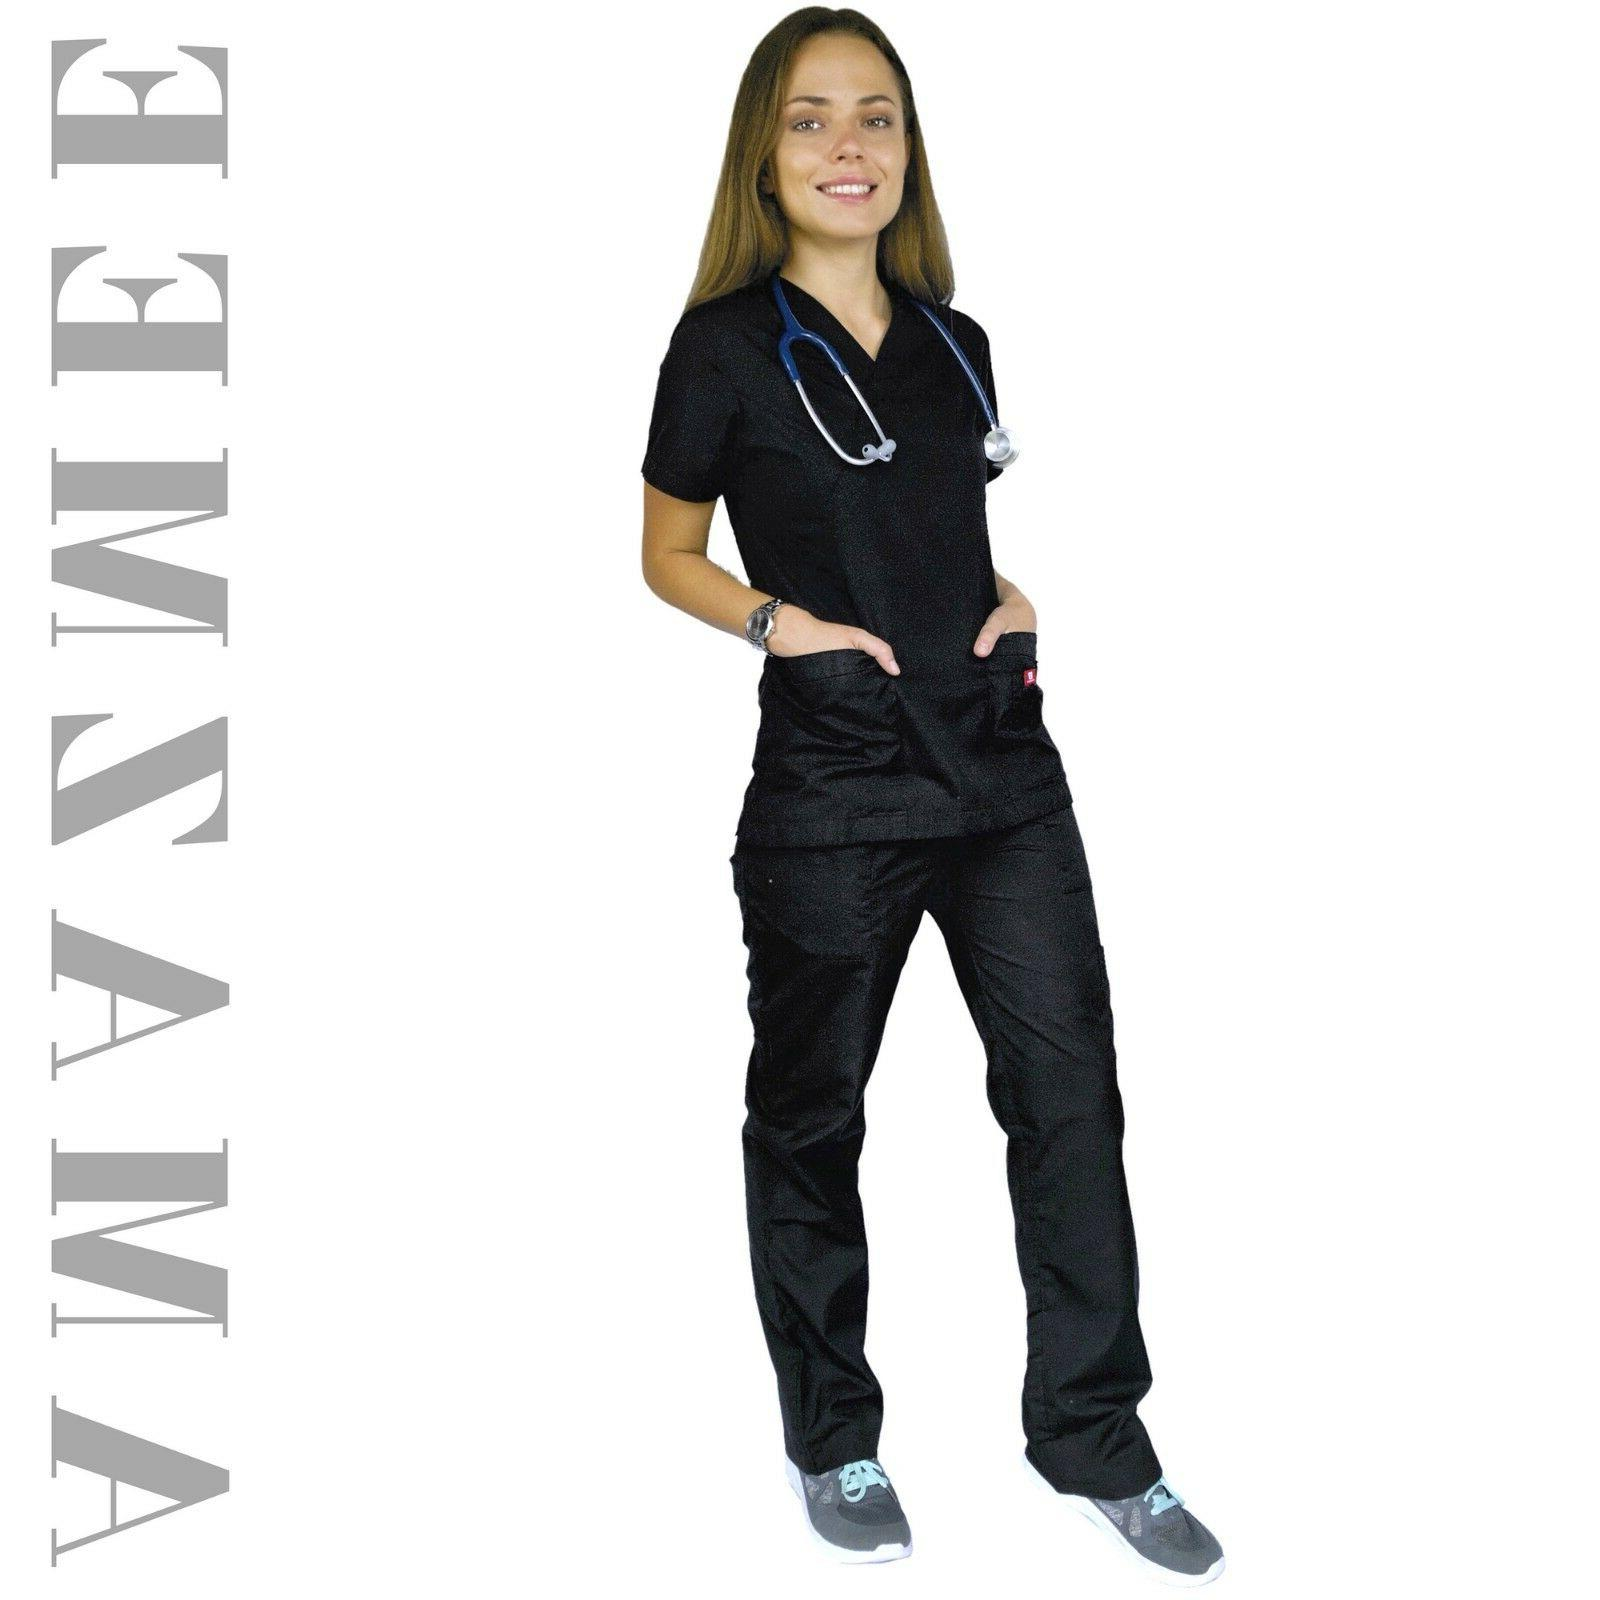 Women's Scrubs Uniform Set Wrap with Pockets